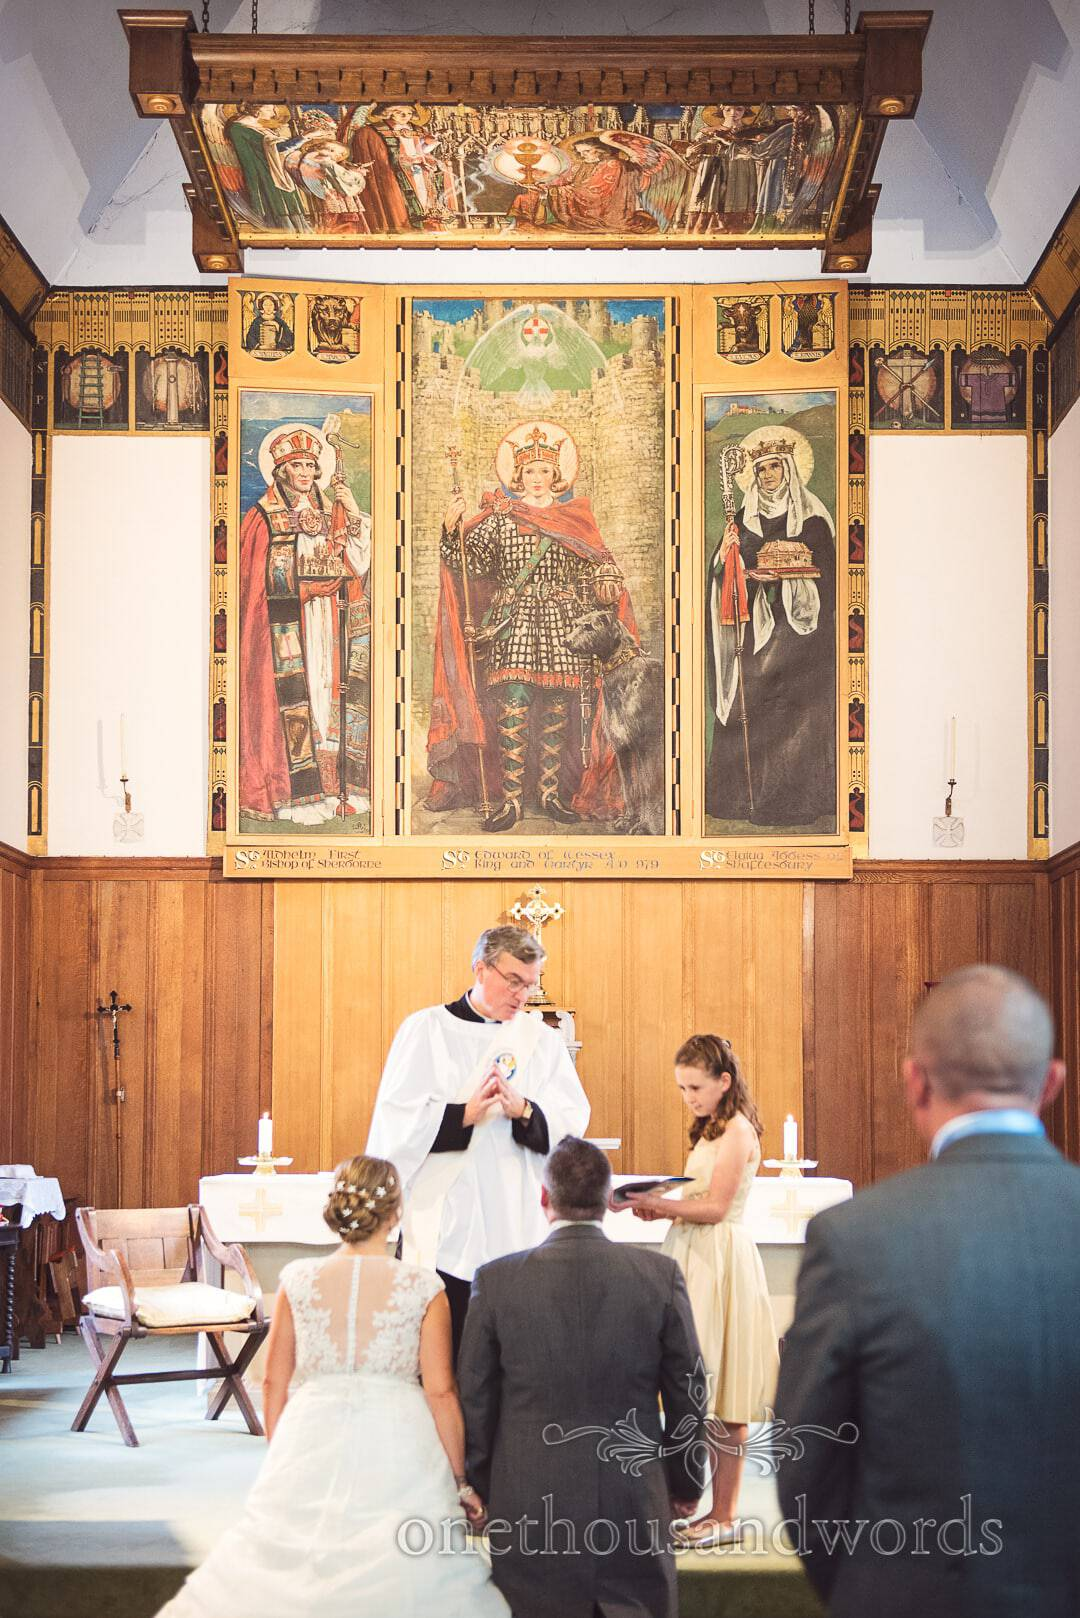 Religious artwork framed with wood and gold at Swanage Catholic Church wedding Ceremony